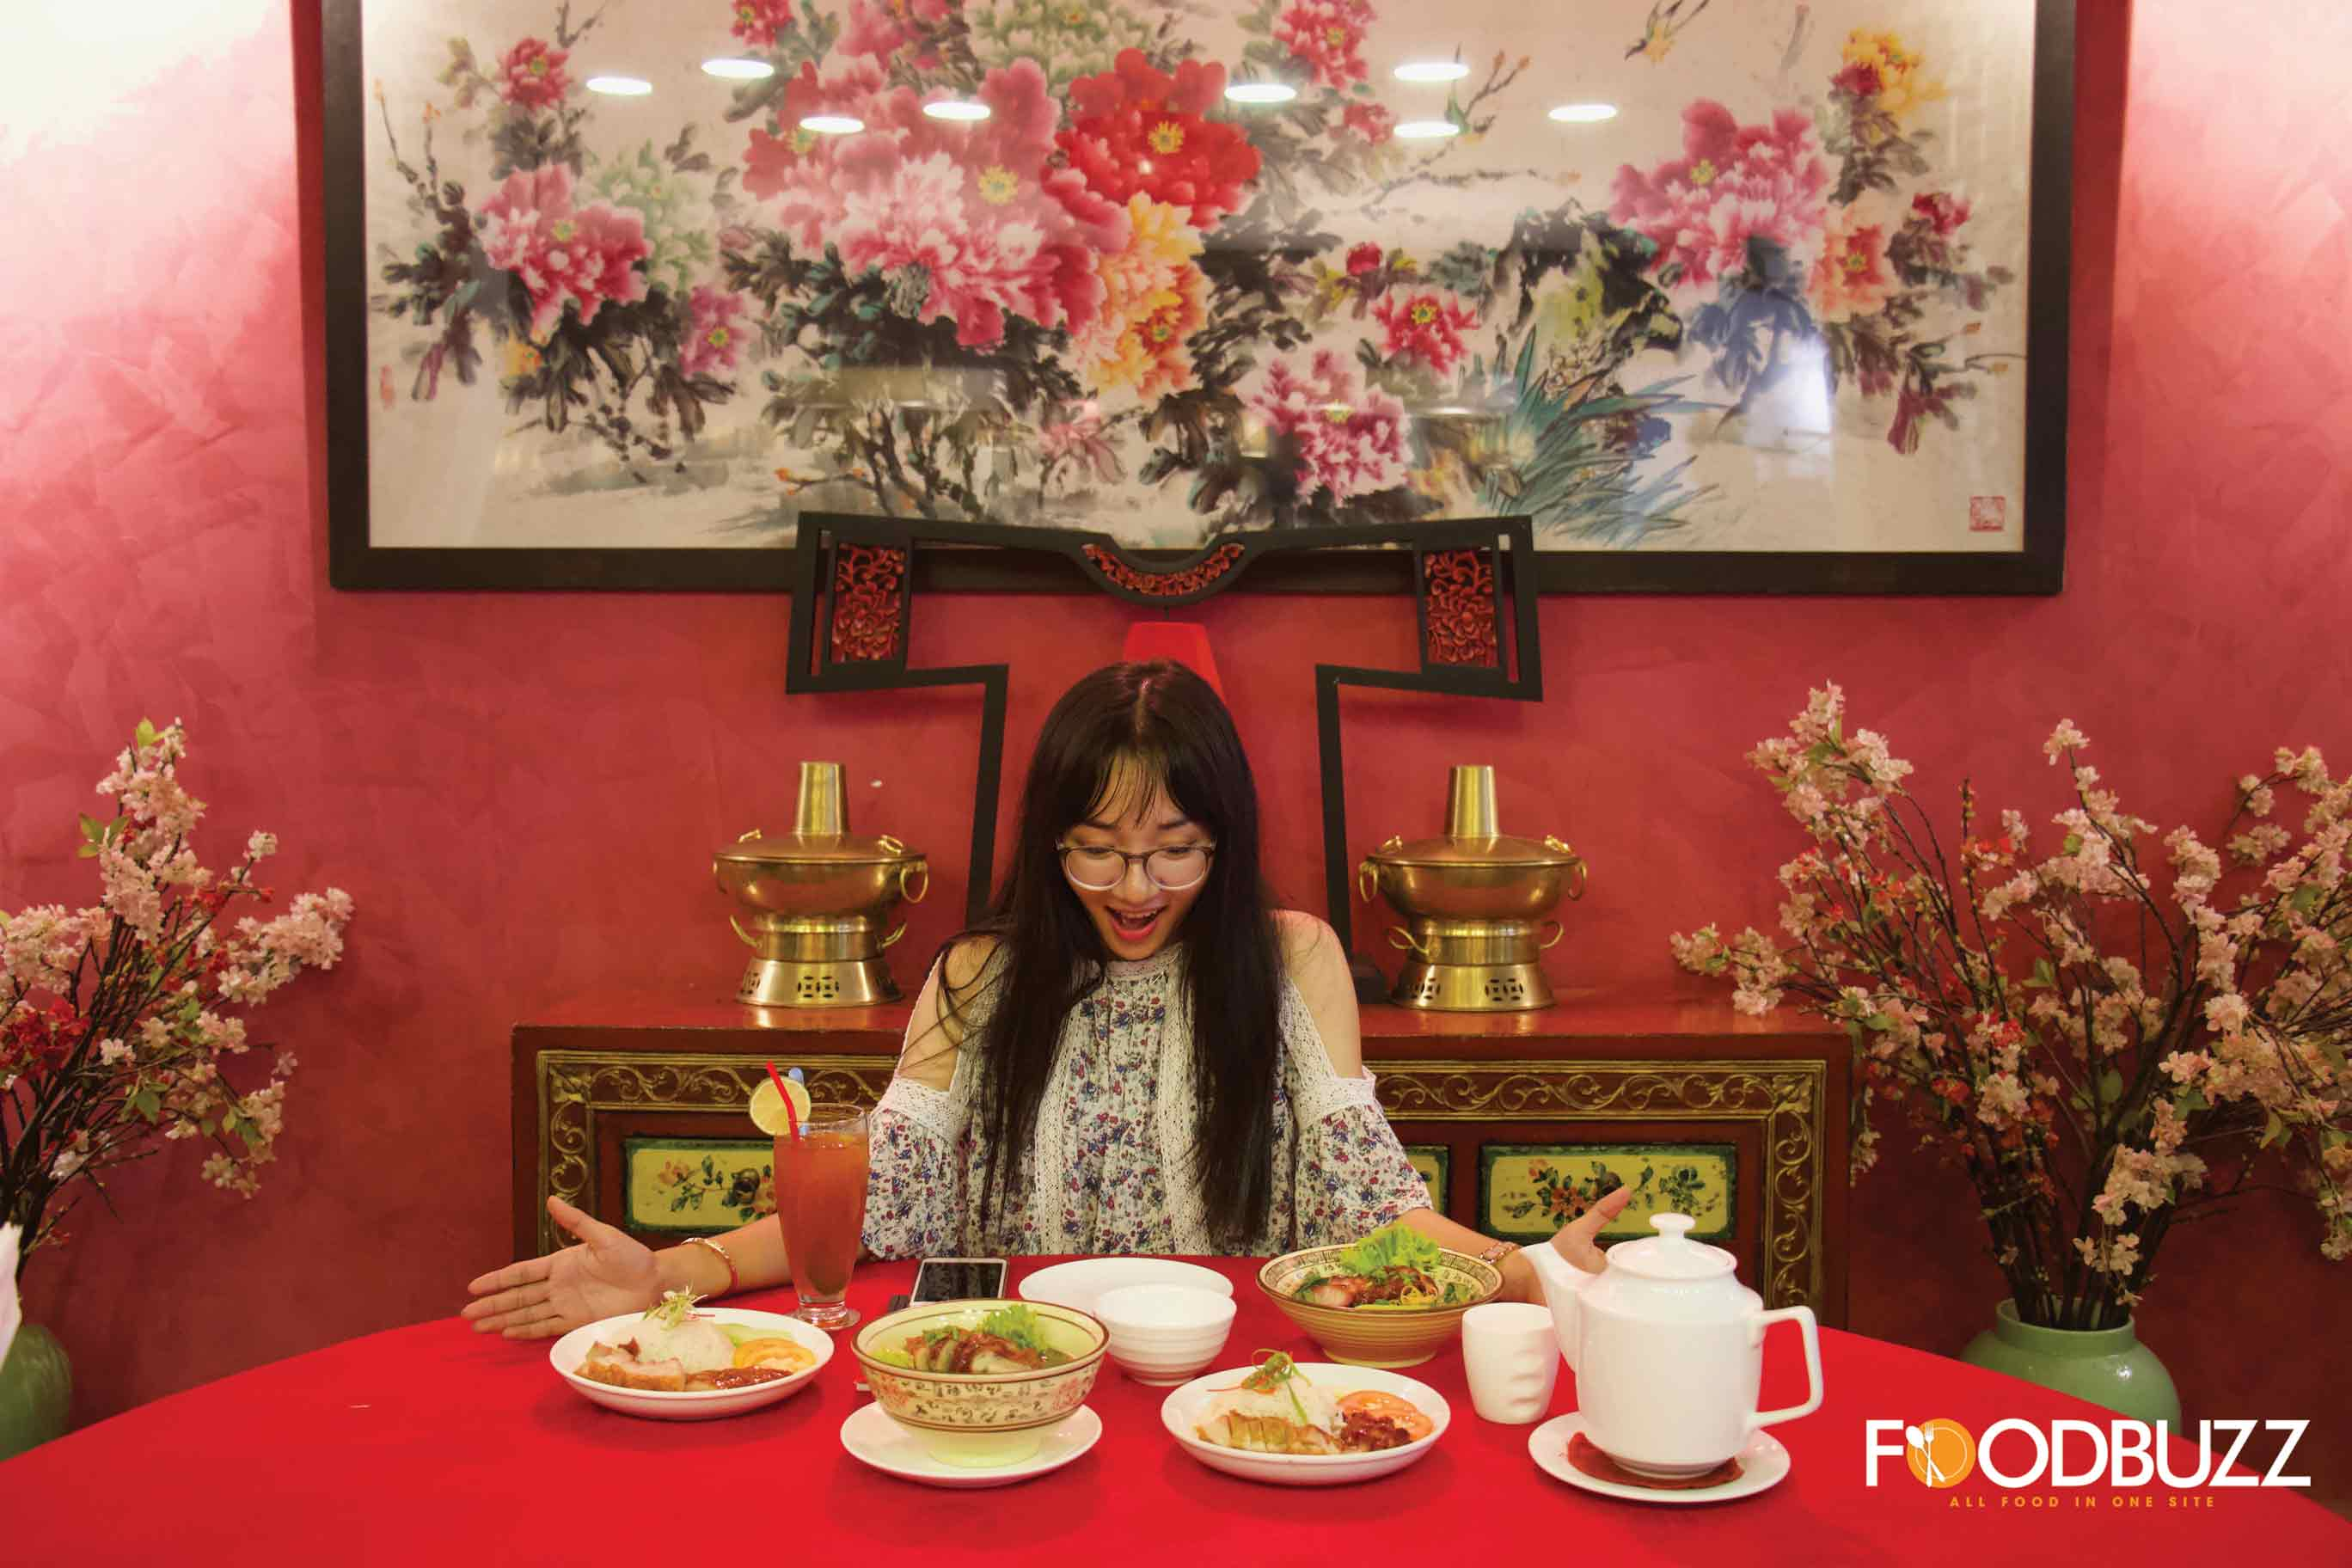 Enjoy your meal like an emperor in Chinese movie/drama